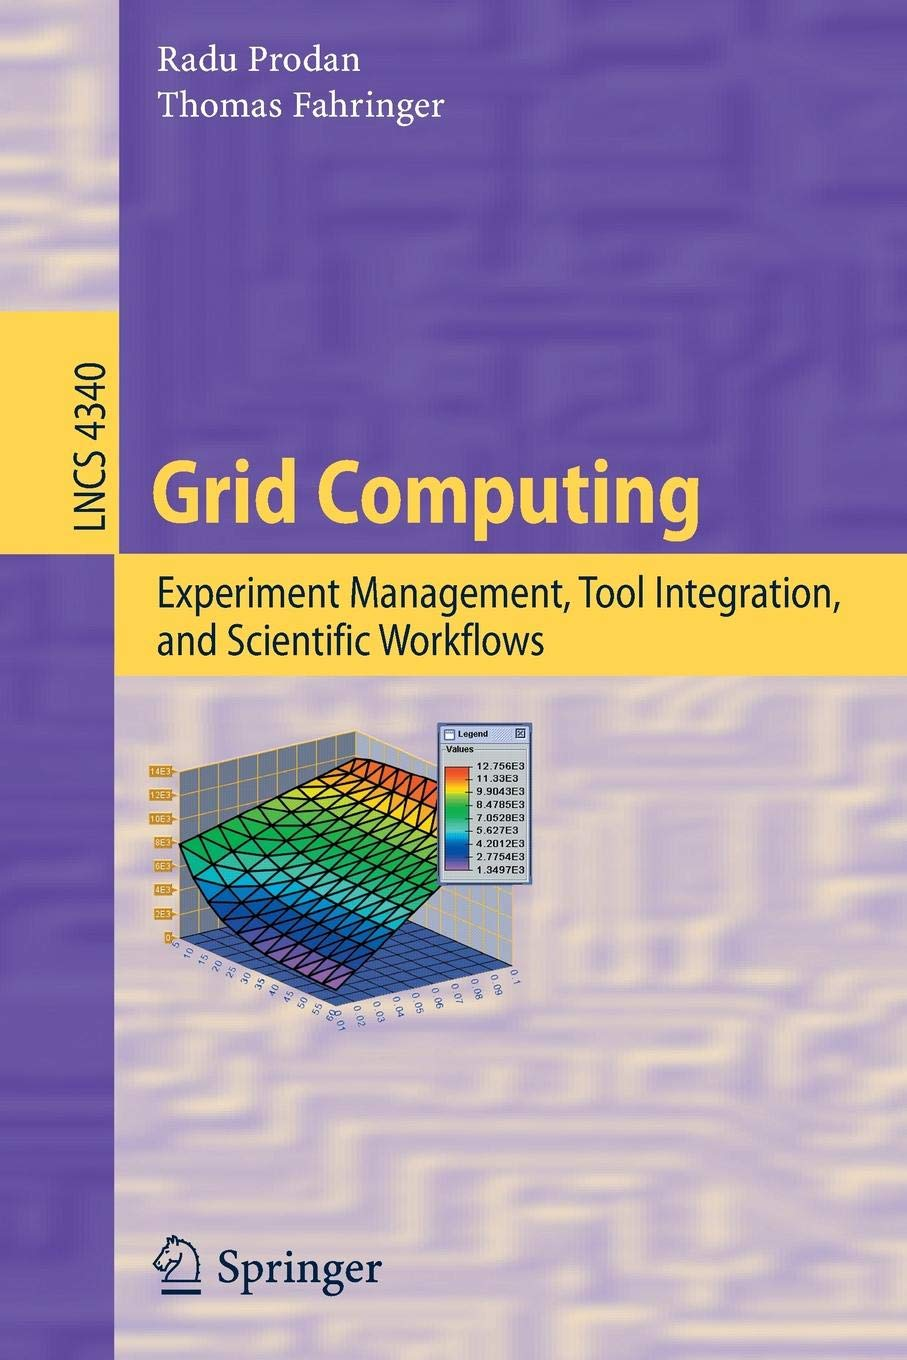 Grid Computing: Experiment Management, Tool Integration, and